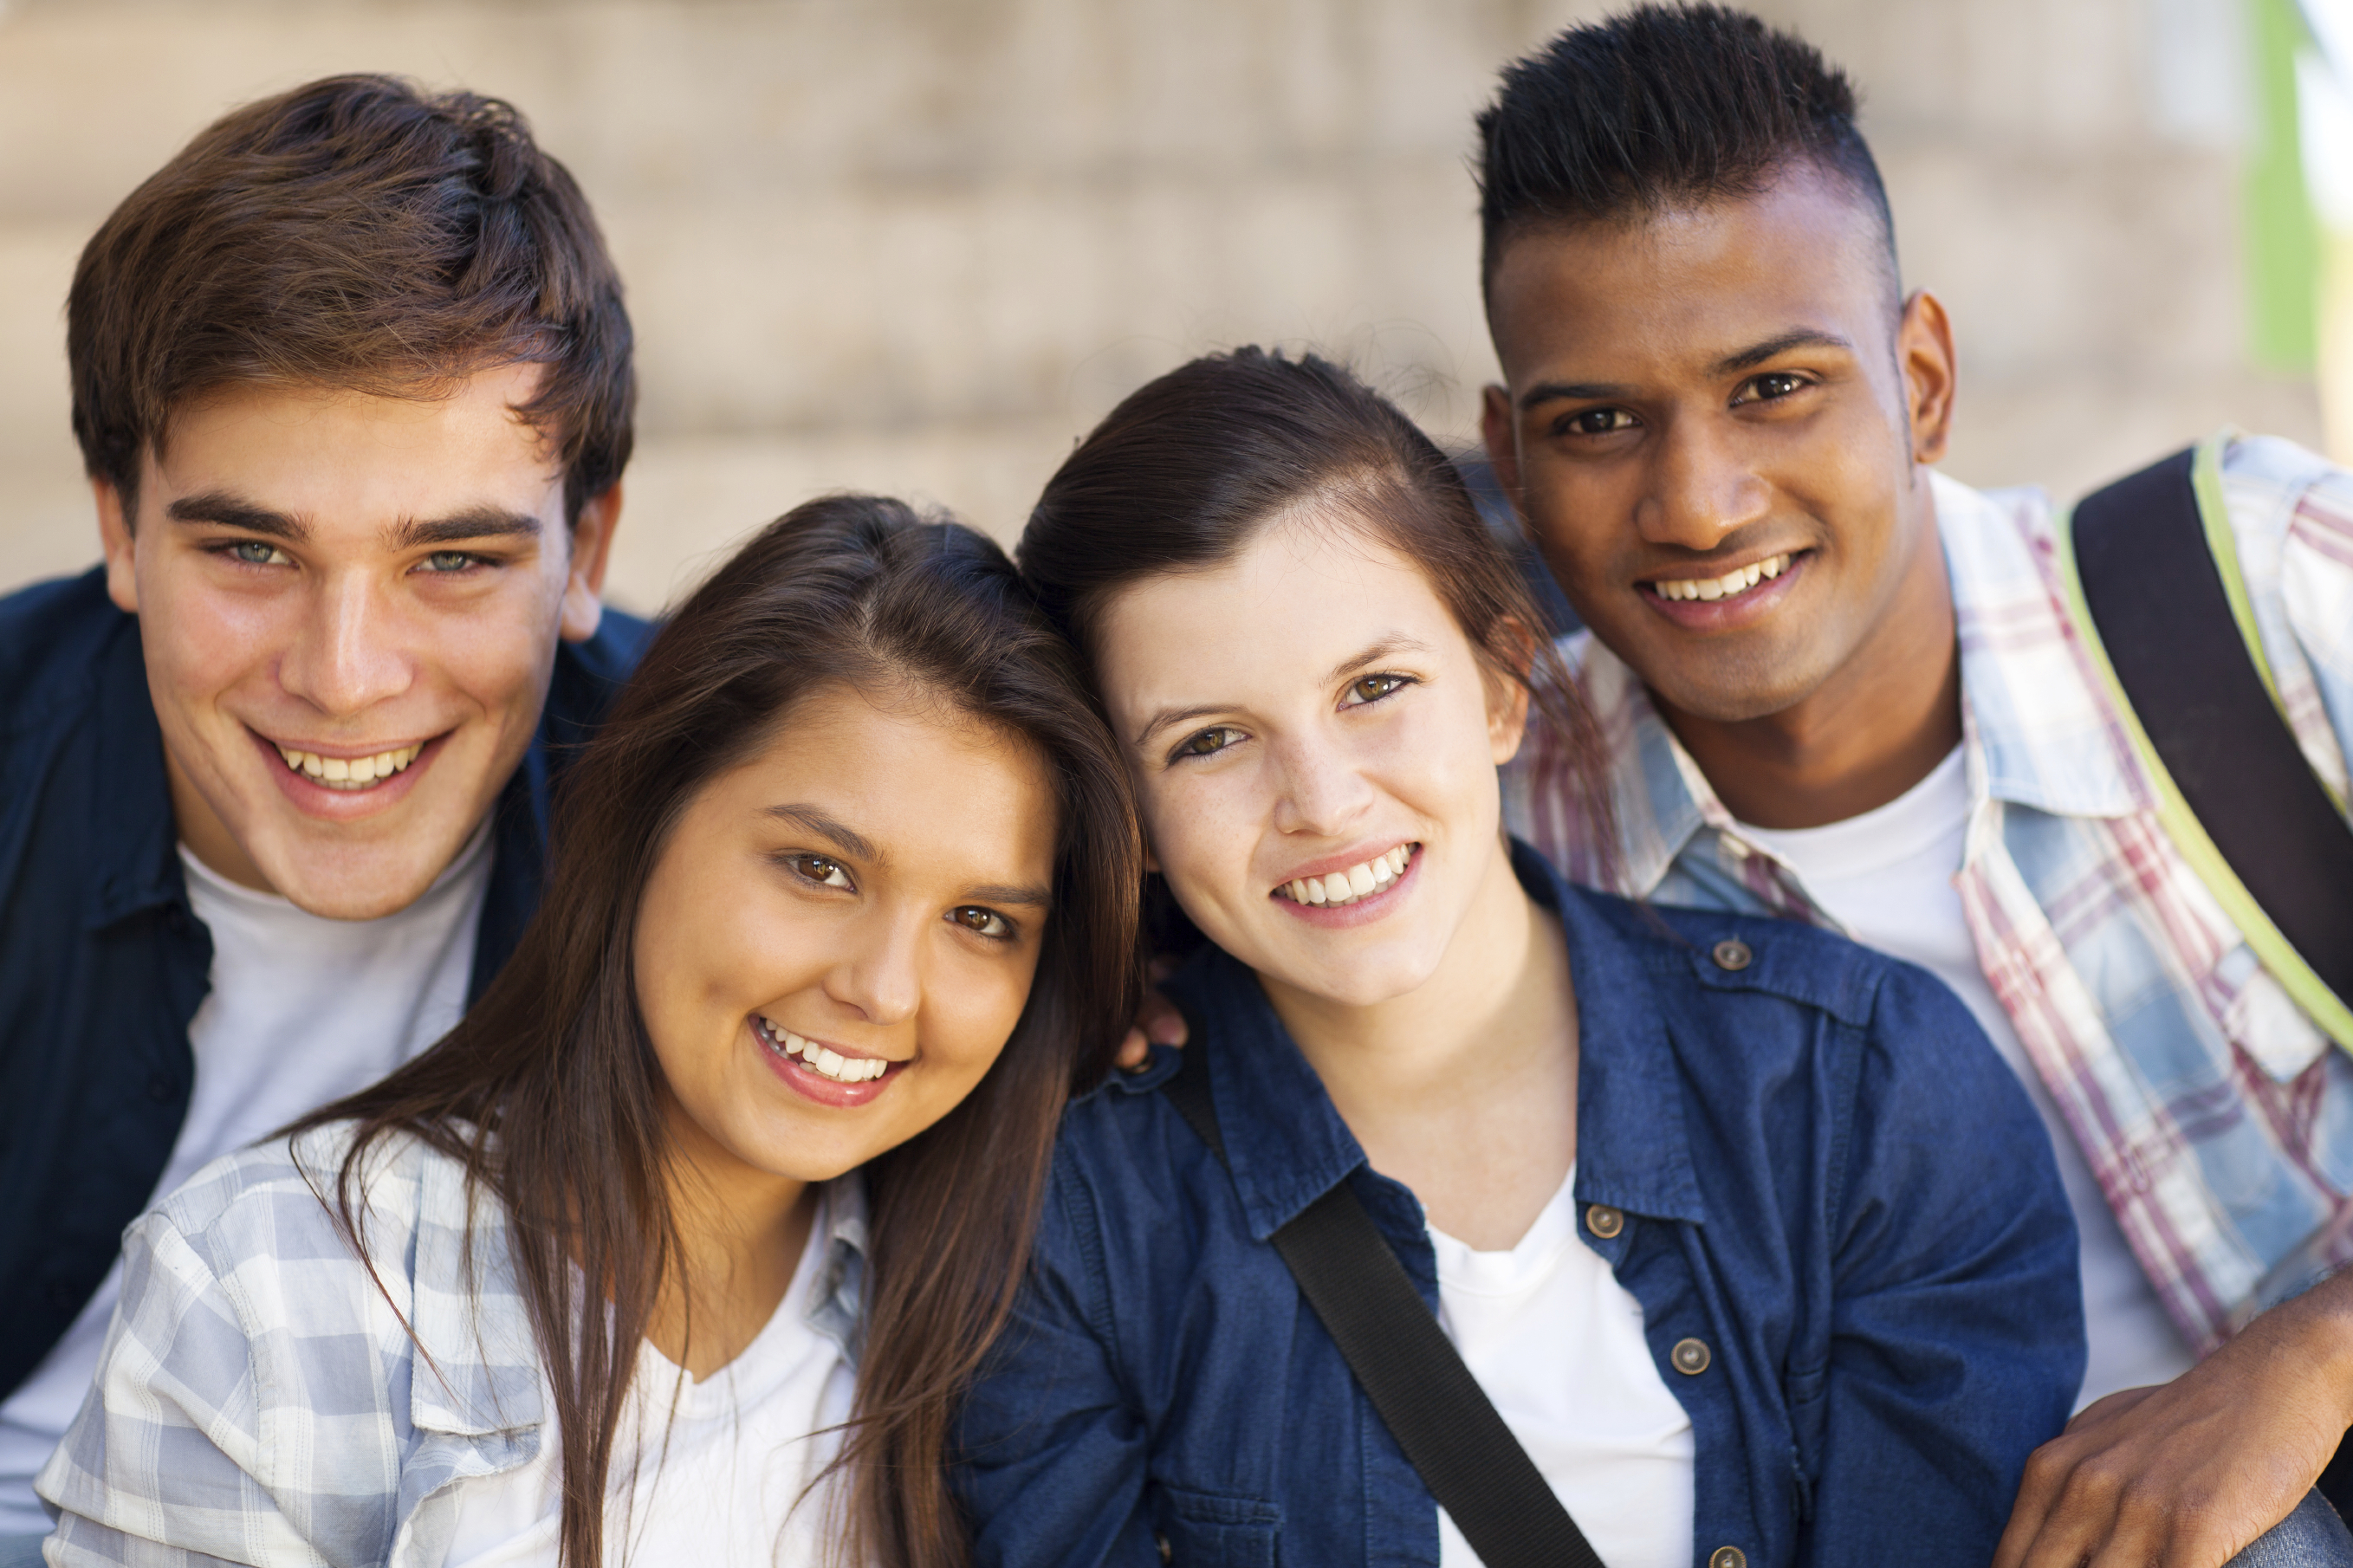 adolescence and family education The journal of adolescent and family health is an interdisciplinary journal, which seeks to publish articles relevant to adolescent and family health we publish original, empirical and conceptual manuscripts ranging from the basic biological and behavioral sciences to social and applied sciences, public health, policy, and evaluation of.